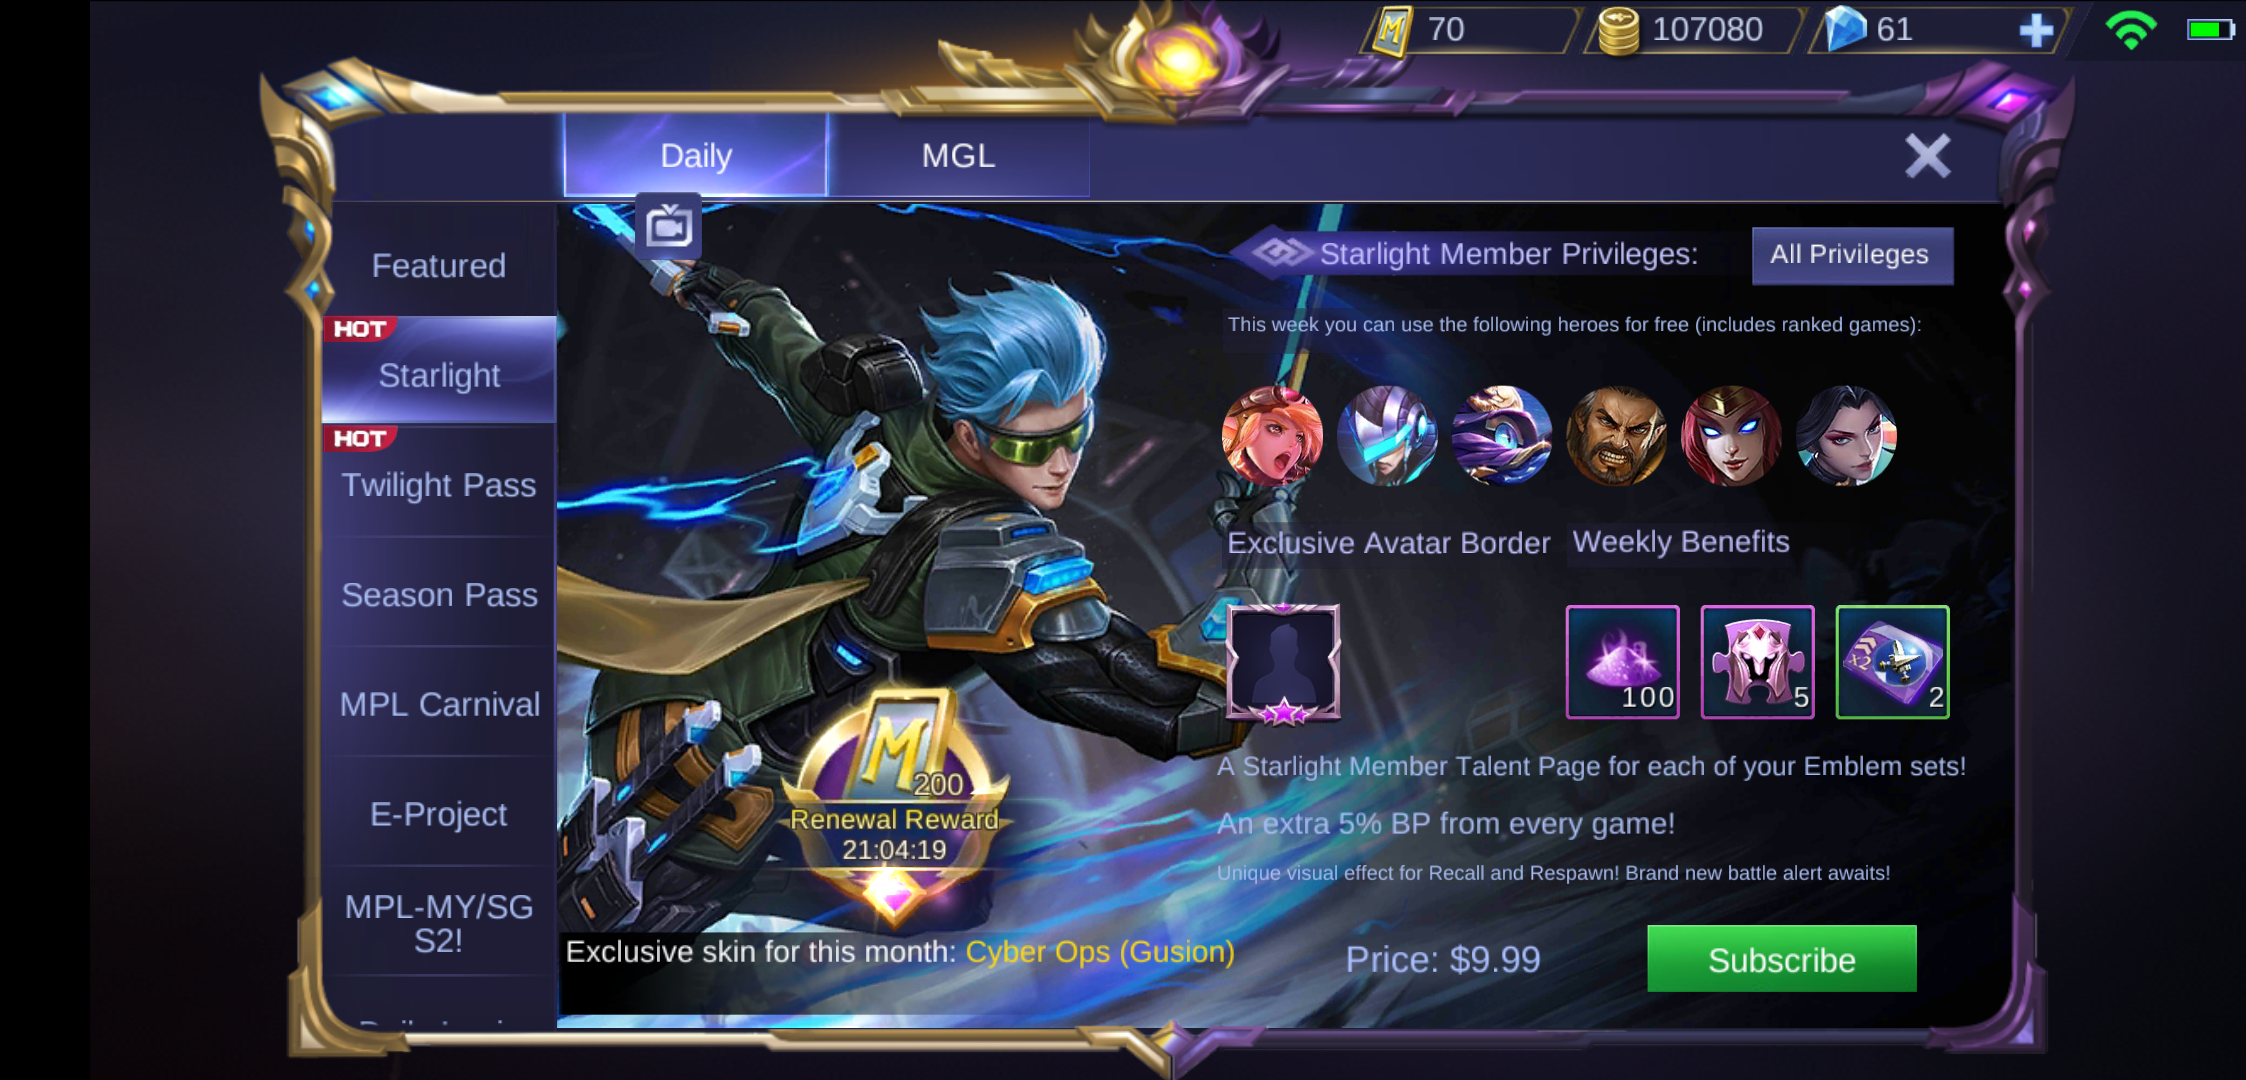 Screenshot_2018-10-11-09-40-05-042_com.mobile.legends.png